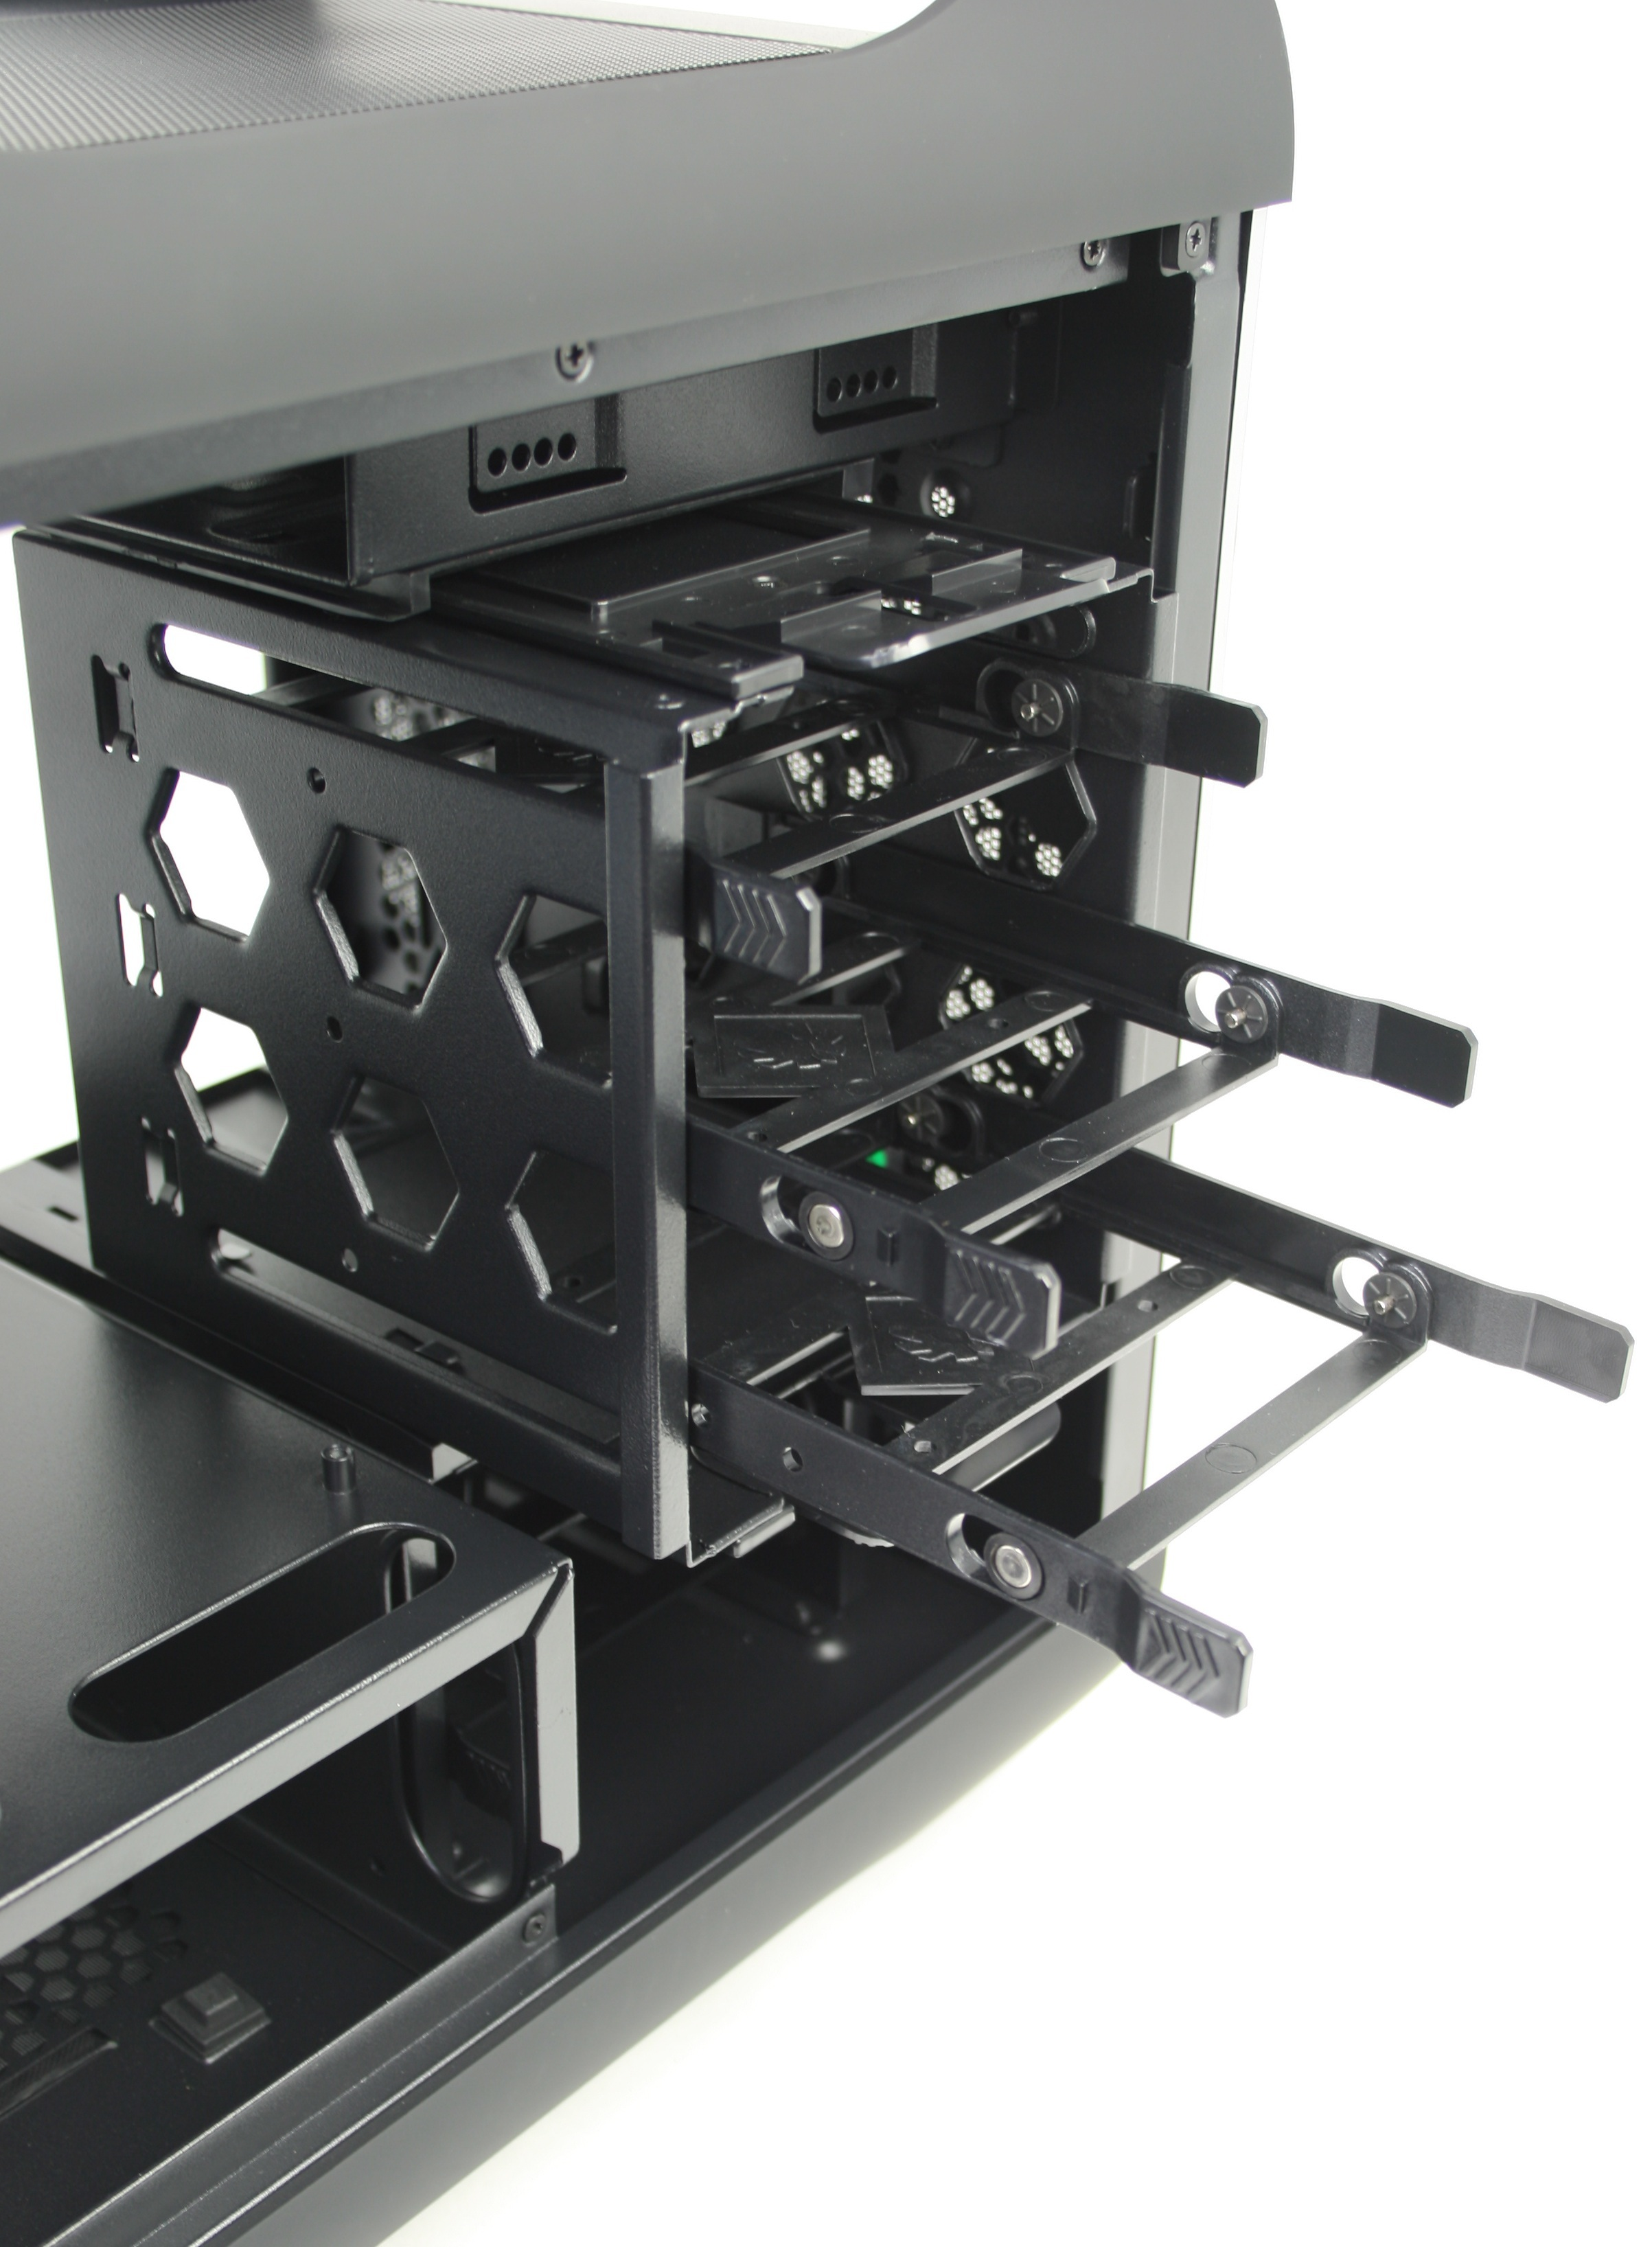 BitFenix Prodigy 3.5 inch Drive Cage Tray Removed